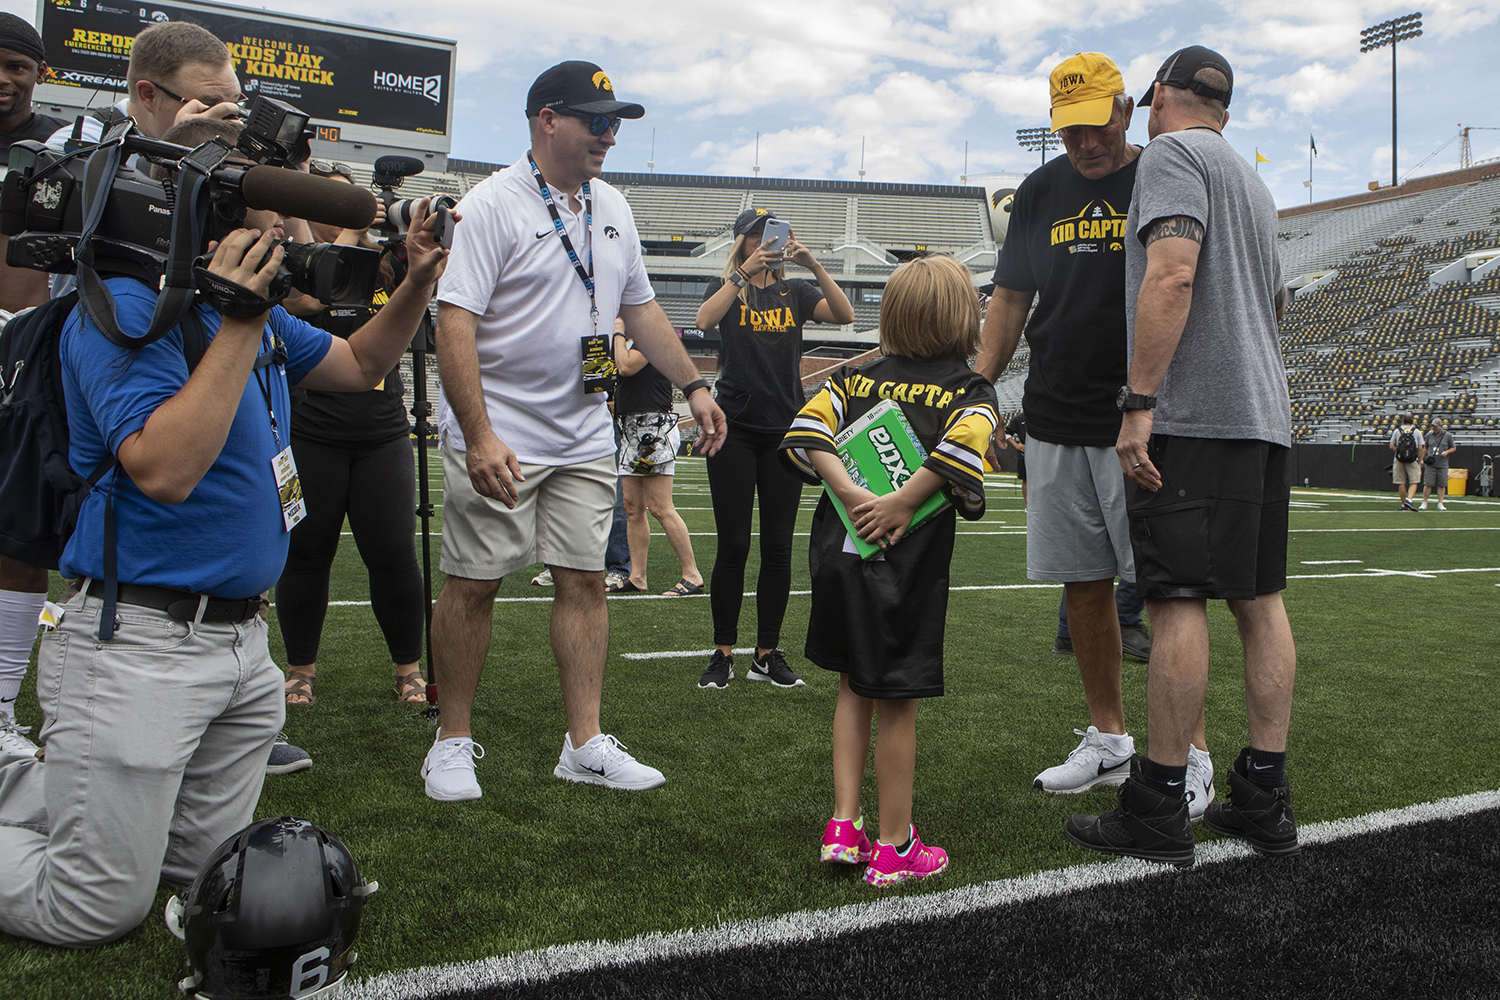 Kid Captain Gabby Yoder holds a large pack of gum to give Hawkeye Head Coach Kirk Ferentz at Kids Day at Kinnick on Saturday, August 10, 2019. Kids Day at Kinnick is an annual event for families to experience Iowa's football stadium, while watching preseason practice and honoring this year's Kid Captains.